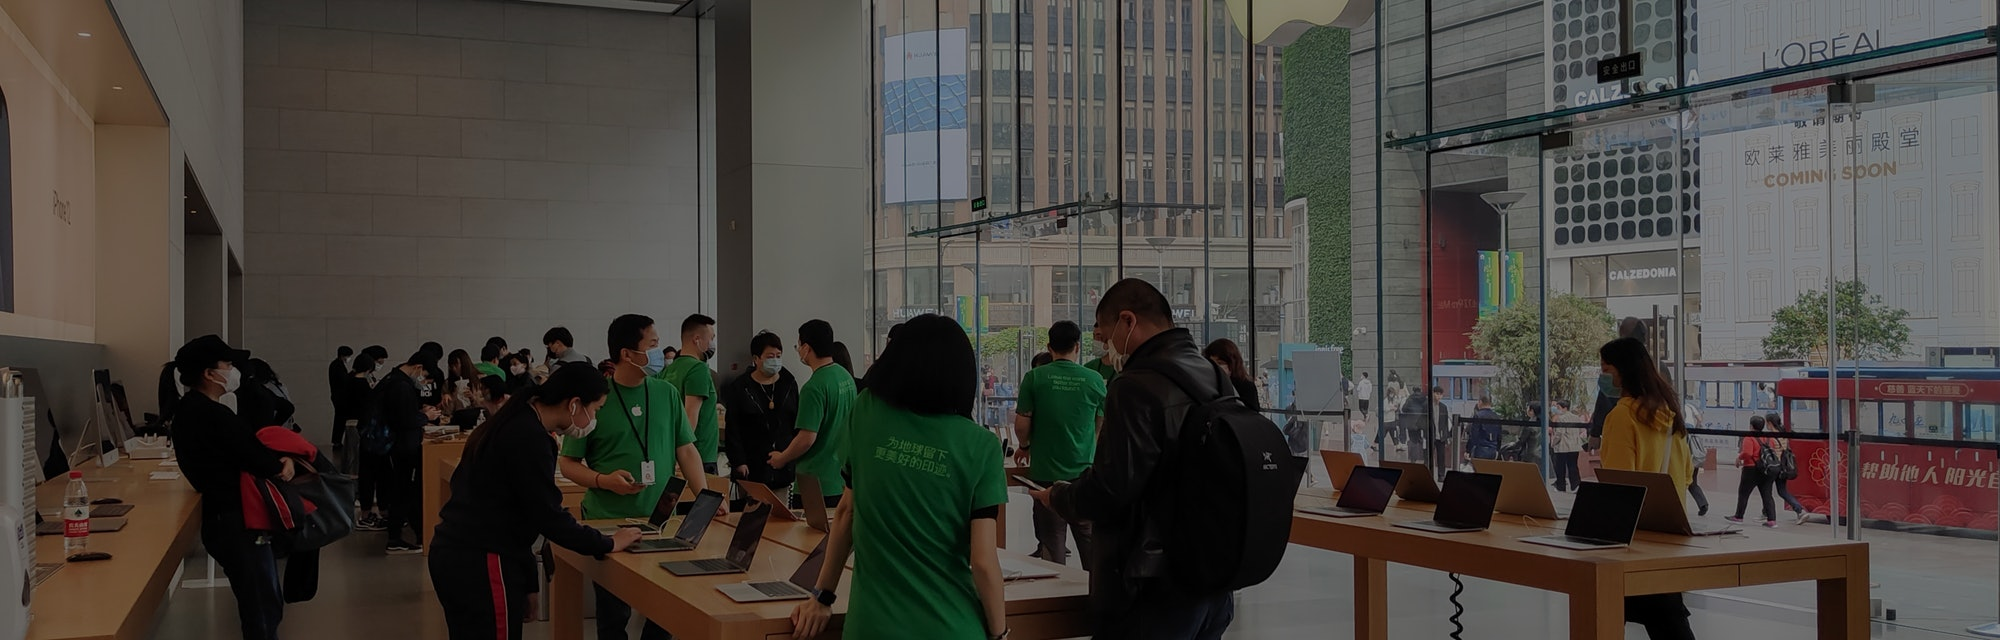 SHANGHAI, CHINA - APRIL 16, 2021 - The Apple store's LOGO lit up with green leaves to mark World Ear...